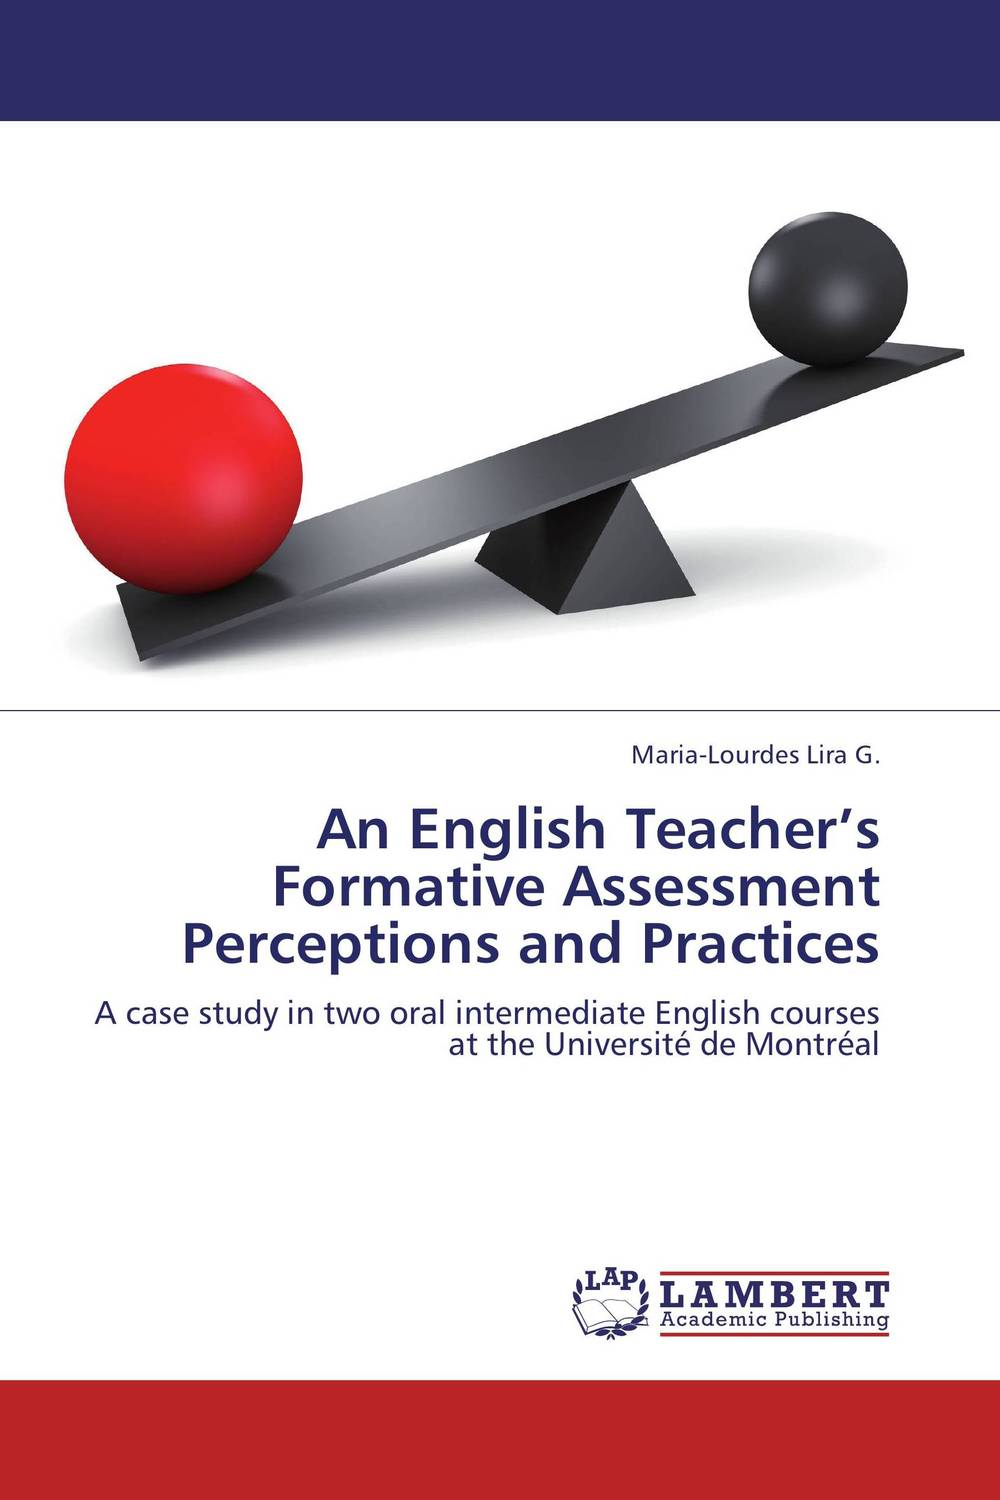 An English Teacher's Formative Assessment Perceptions and Practices nancy mcmunn d a teacher s guide to classroom assessment understanding and using assessment to improve student learning